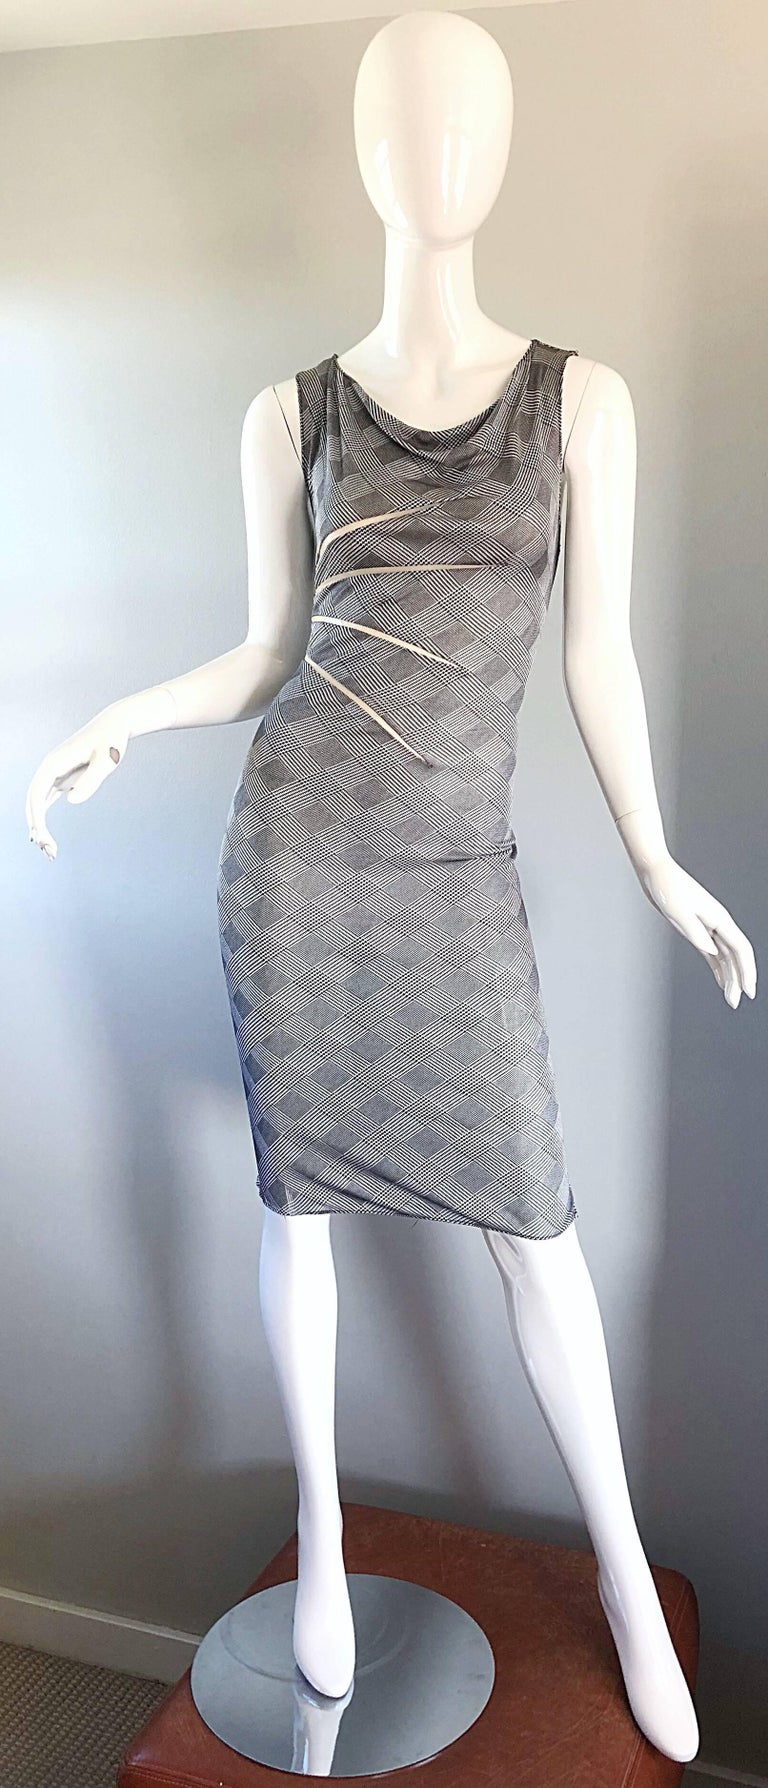 Rare and collectible vintage GIANNI VERSACE COUTURE  Spring / Summer 1998 black and white houndstooth dress! Sheer cut-out details at the side bodice on the front and back of this 1990s dress. Features a body hugging silk jersey that stretches to